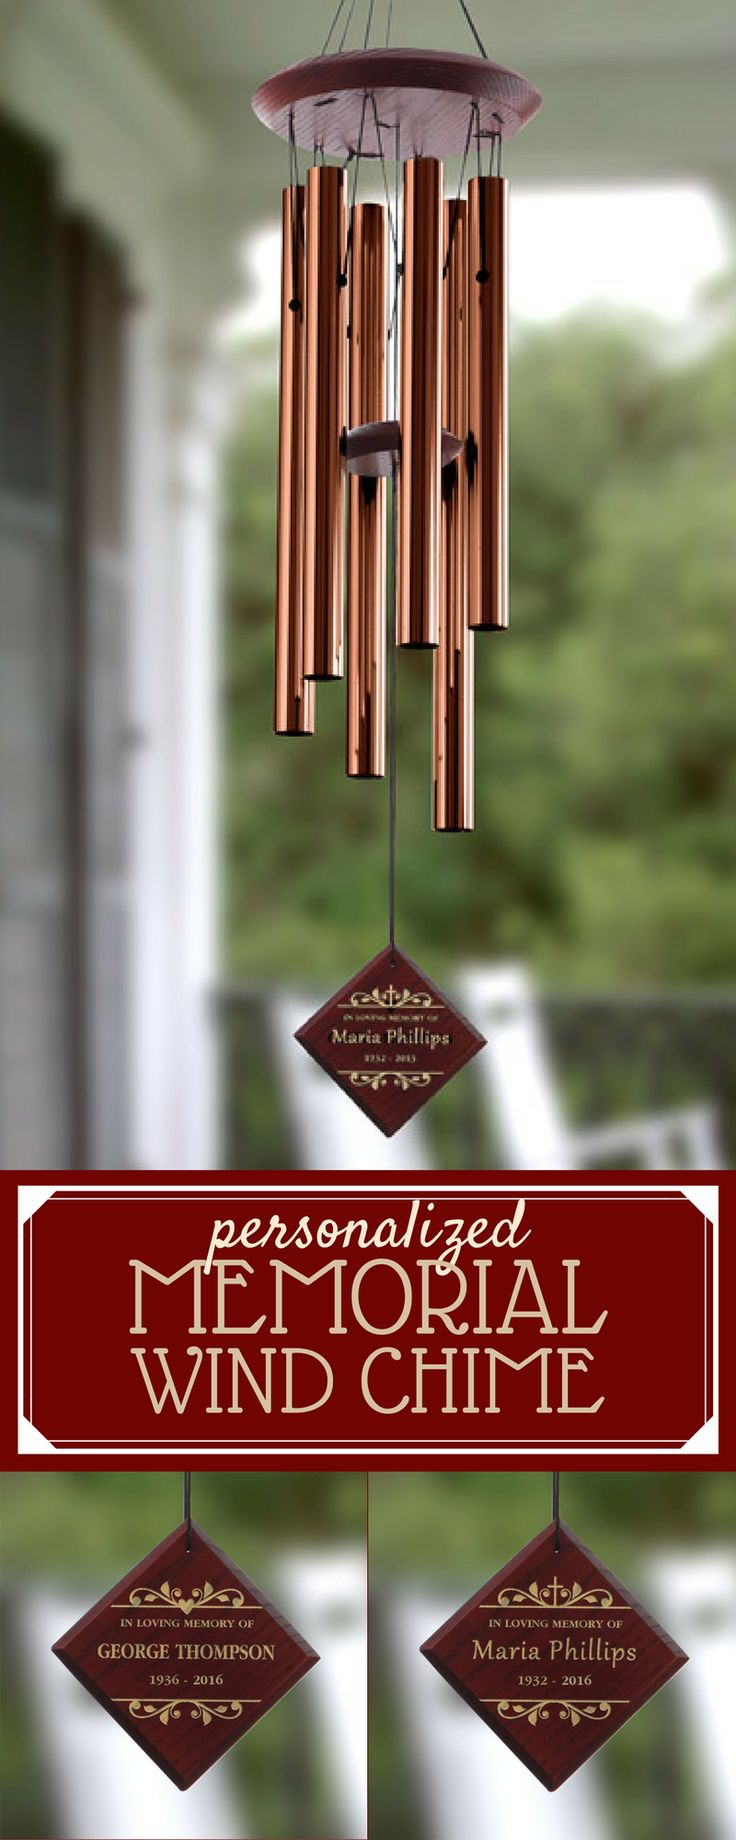 25 best ideas about memorial gifts on pinterest funeral for Wind chime design ideas